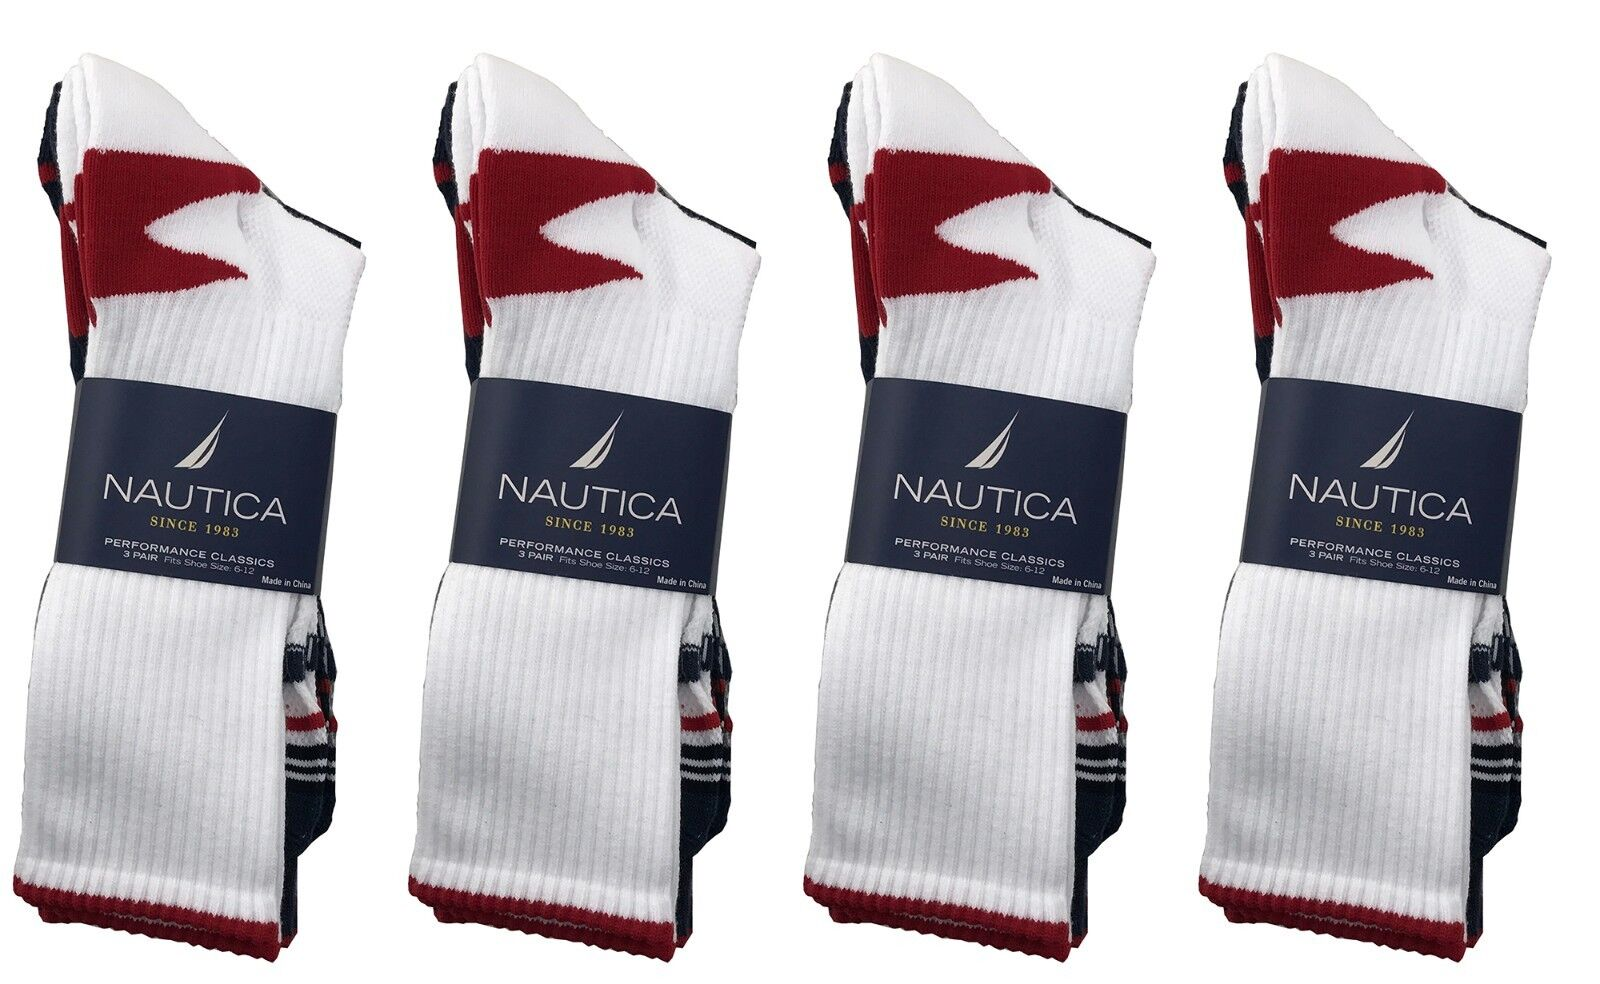 12 Pairs Nautica Mens Crew Sports Socks 10-13 Shoe Size 6...